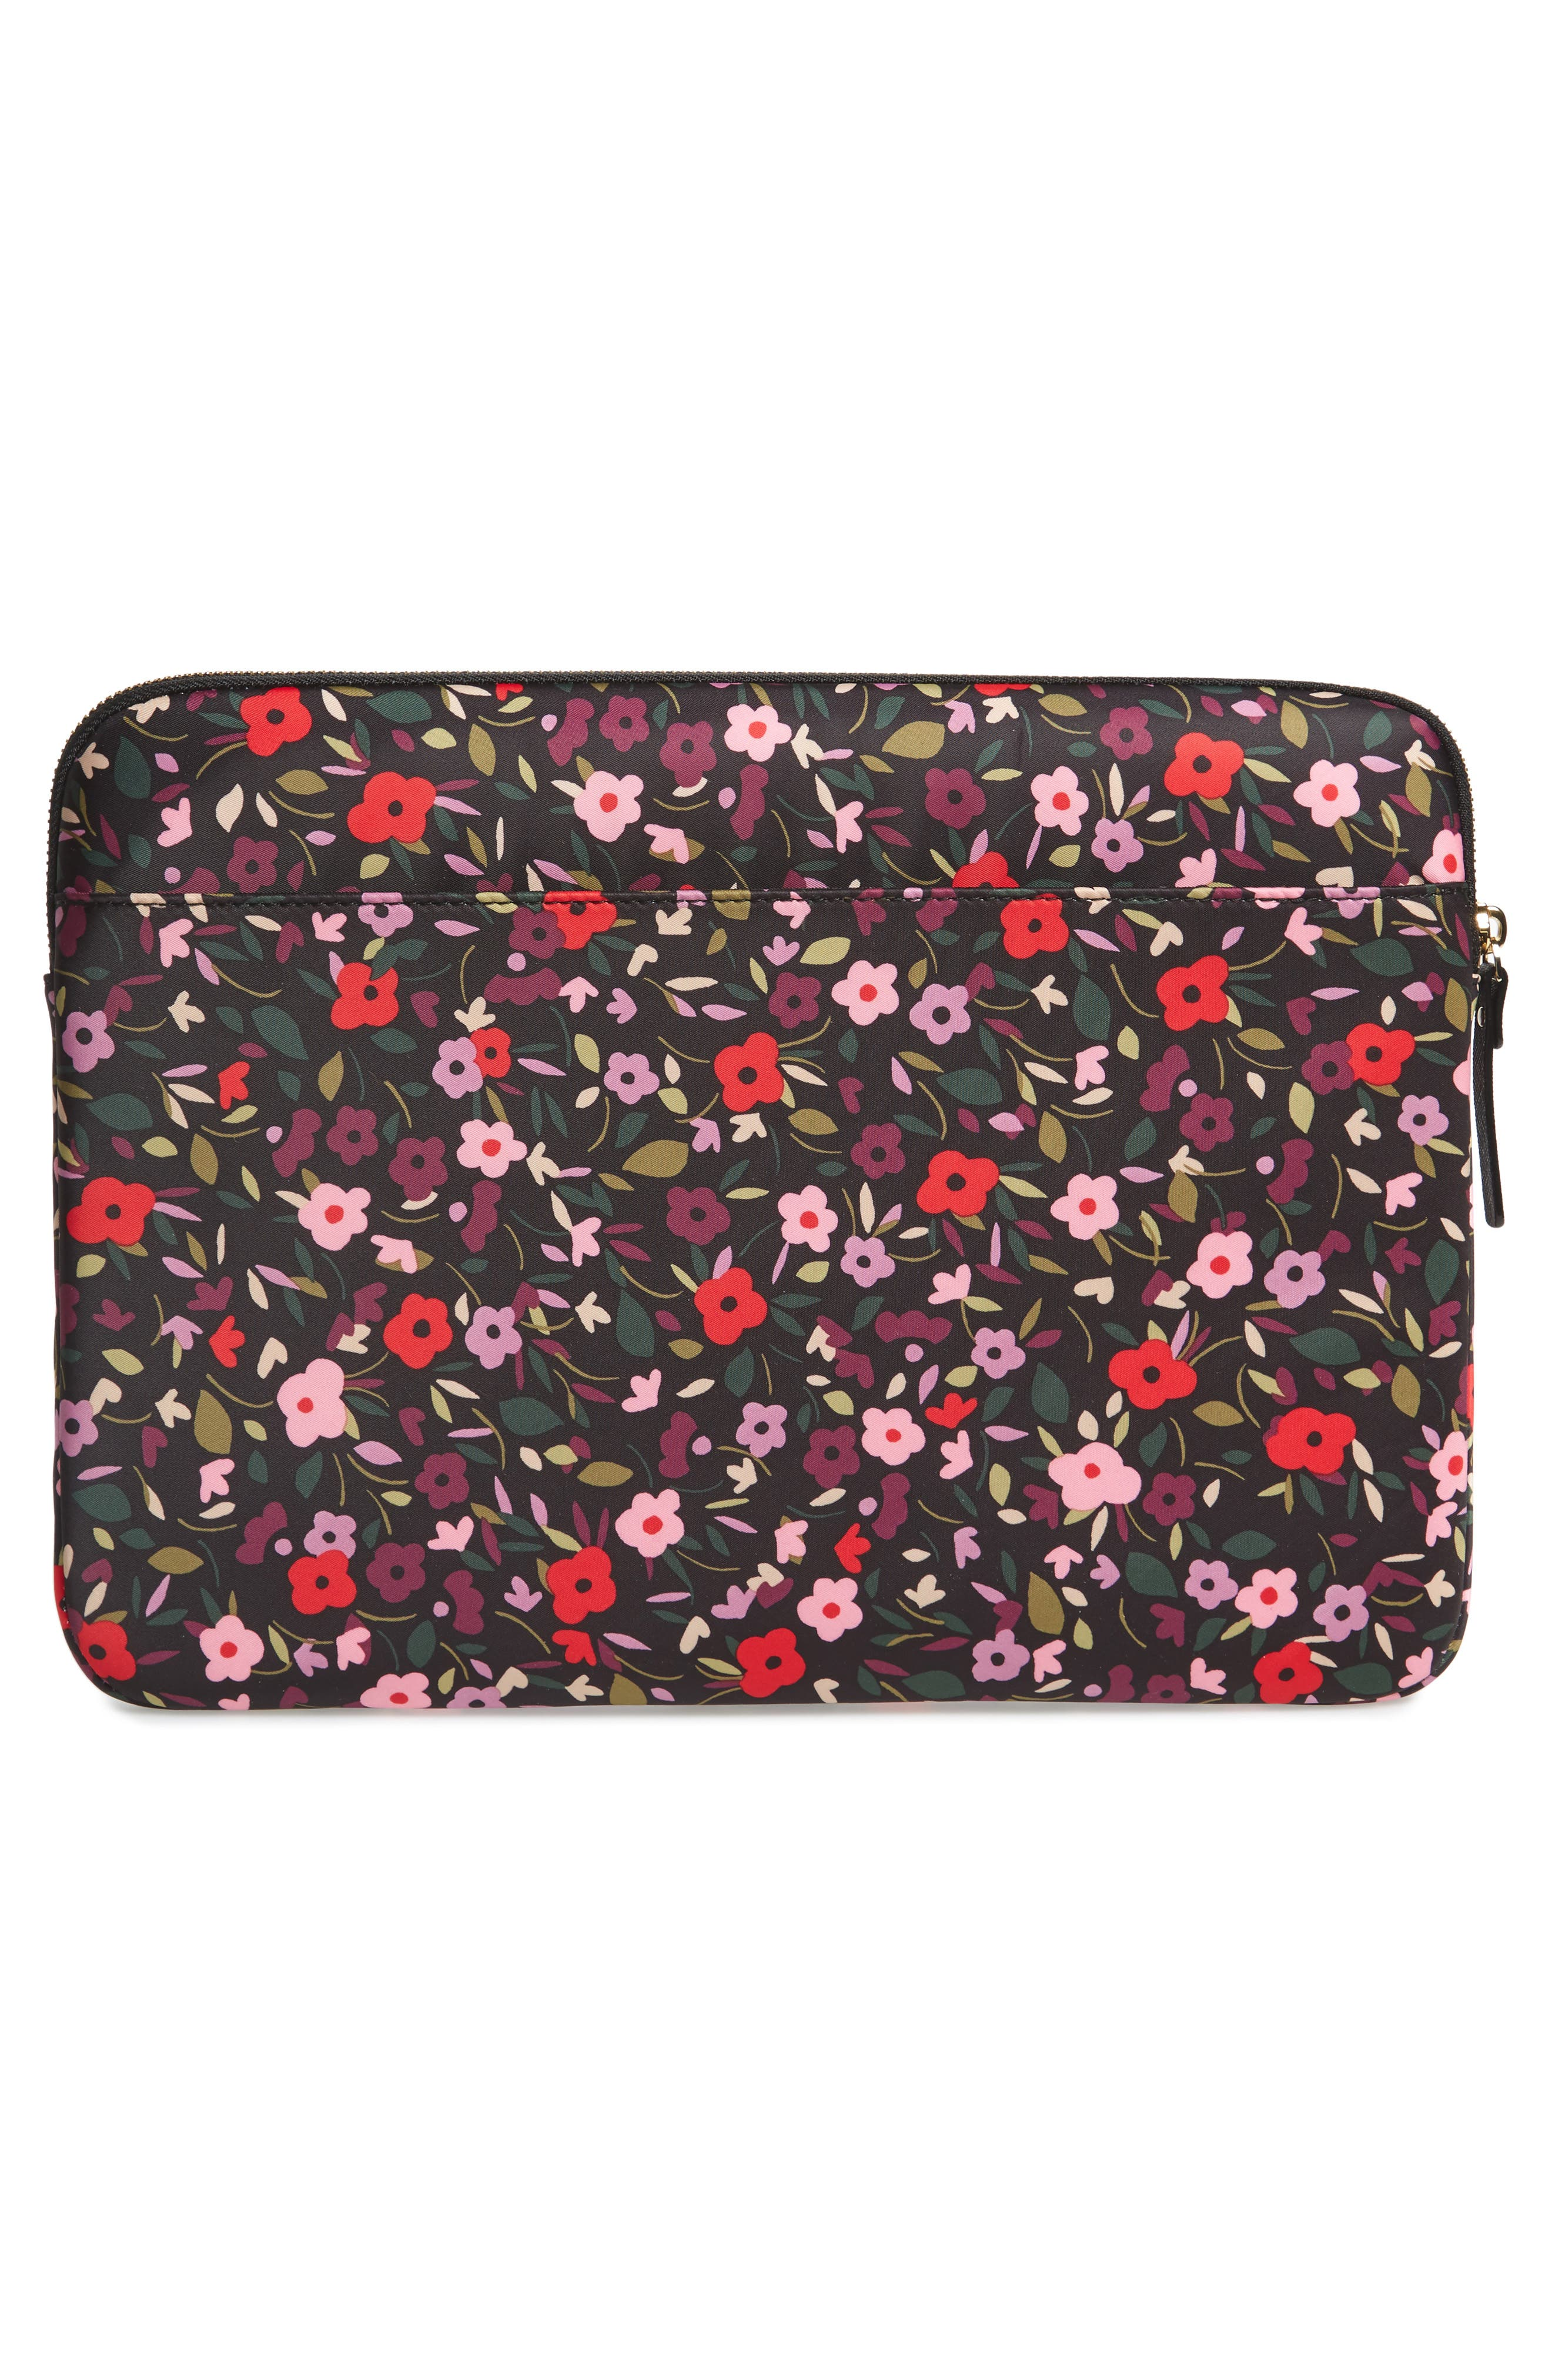 boho floral 13-inch laptop sleeve,                             Alternate thumbnail 4, color,                             002